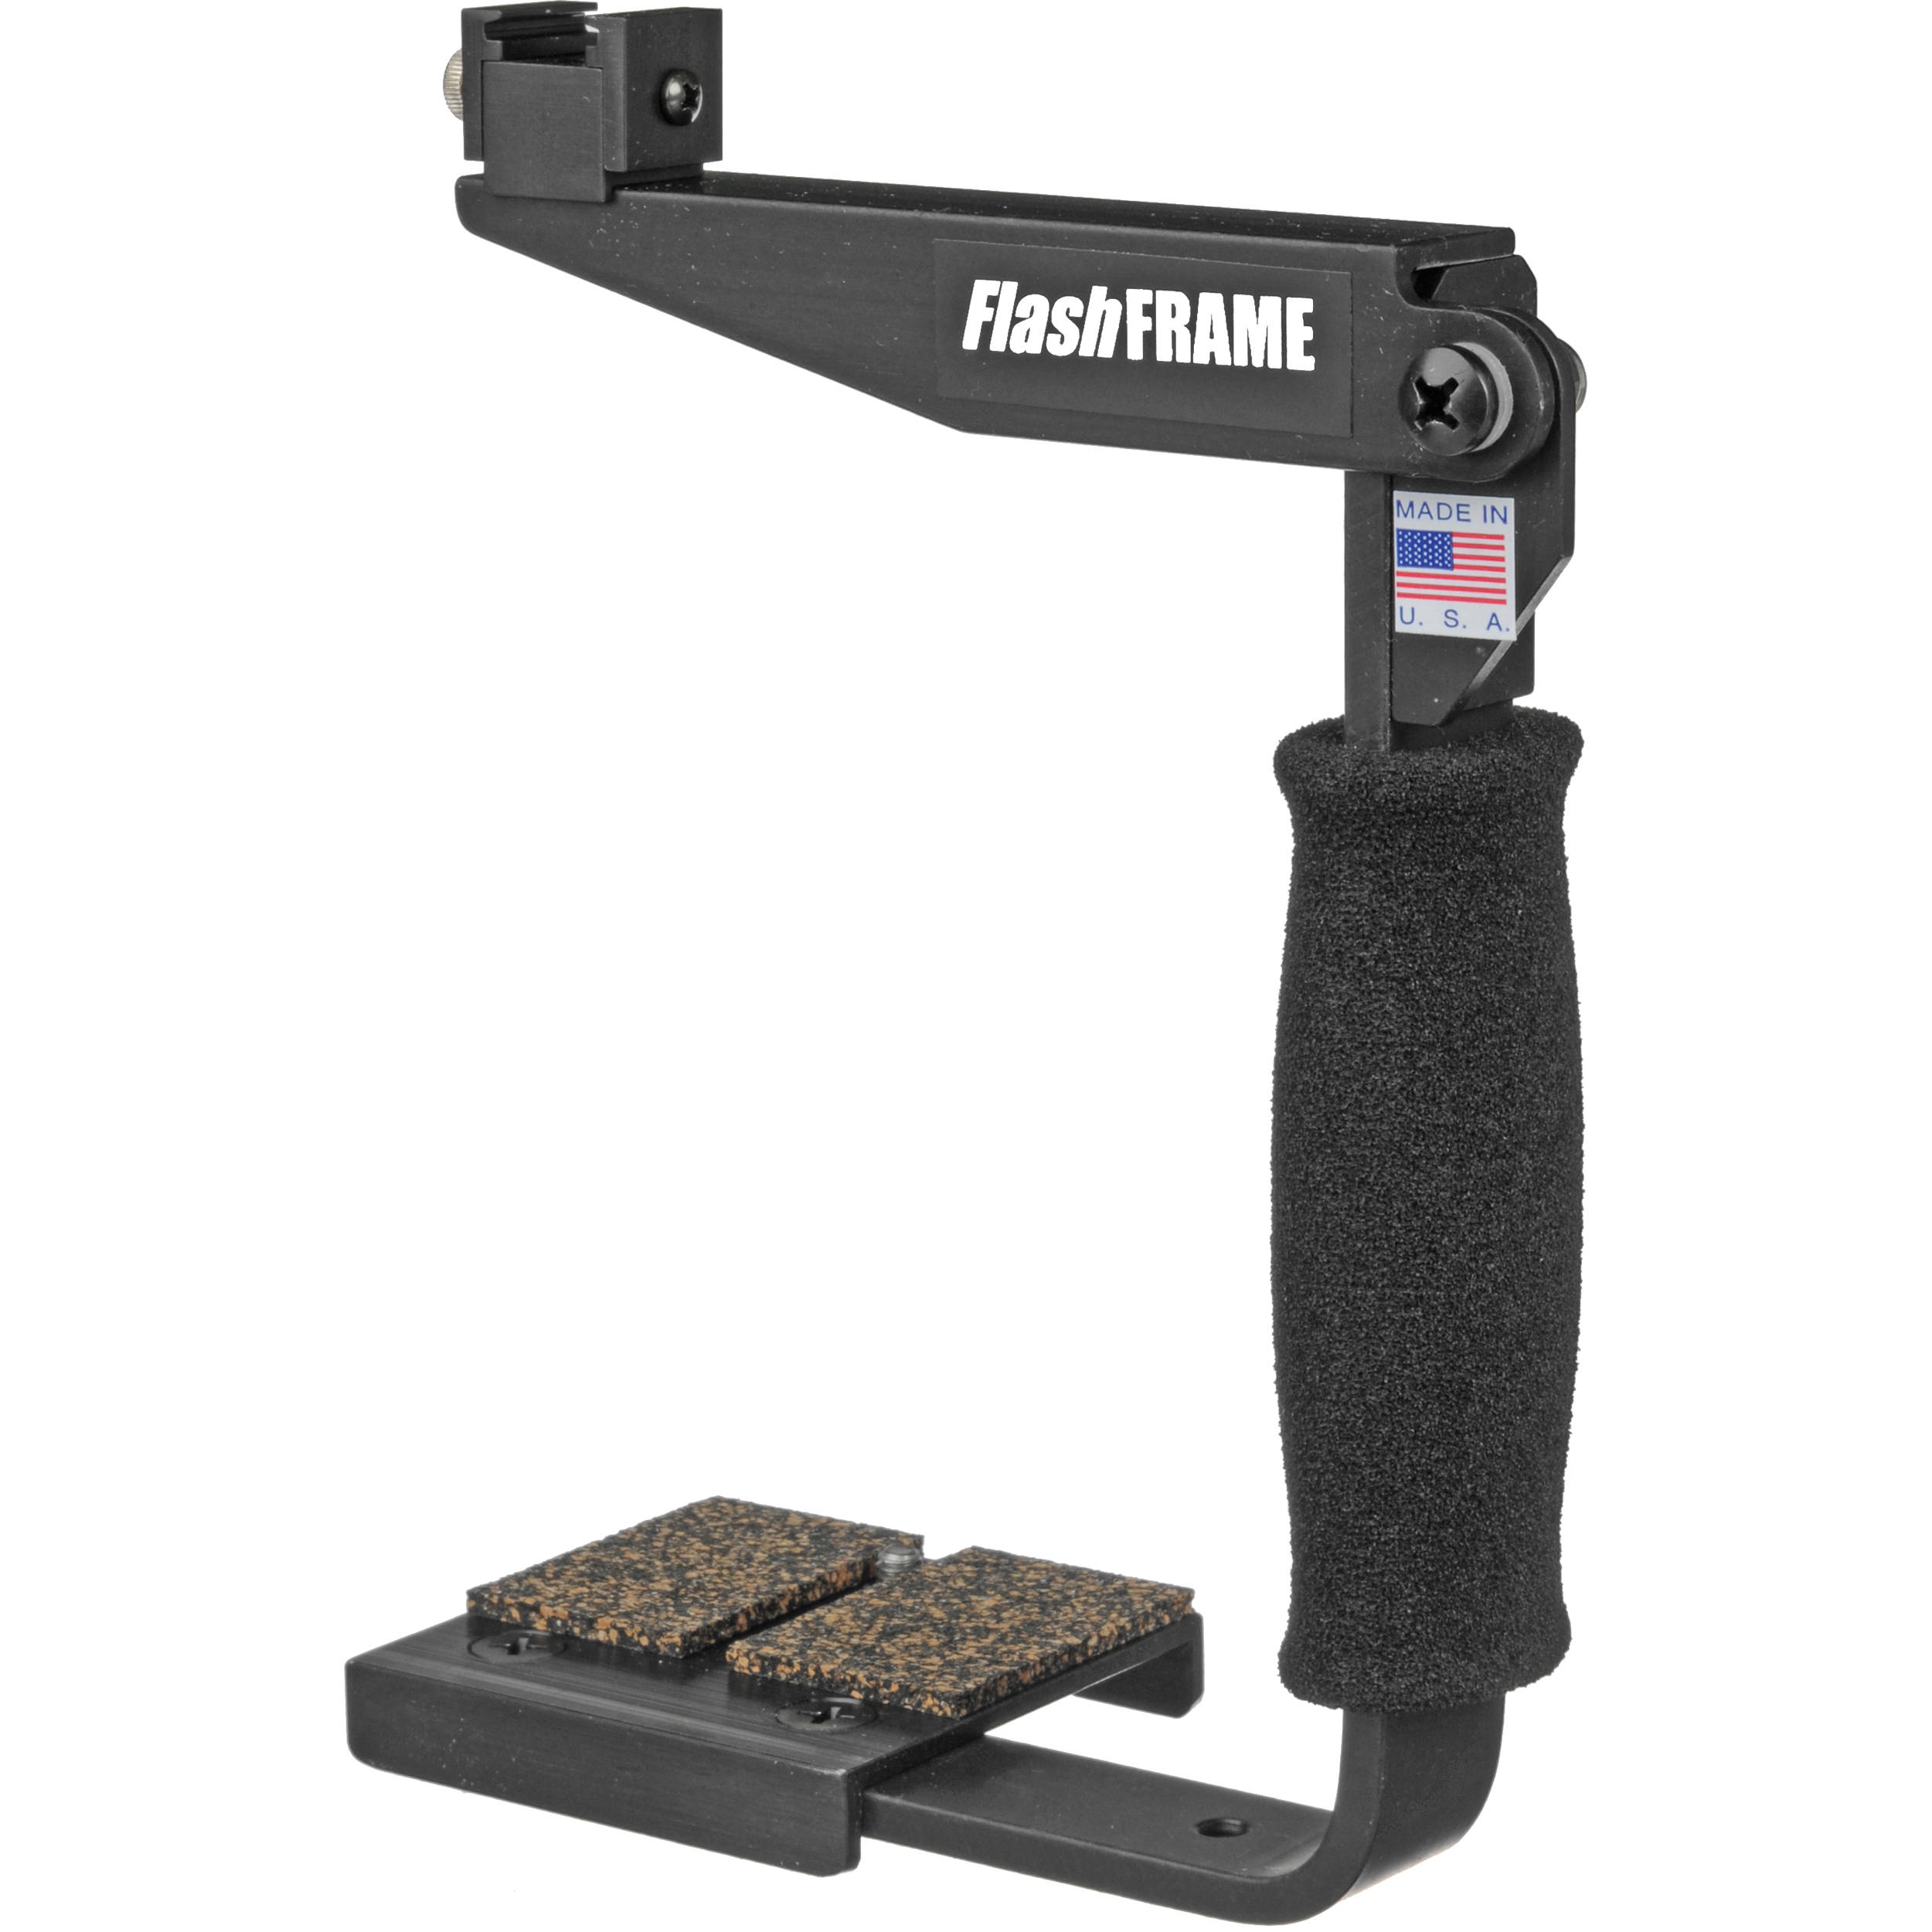 Flash Frame Flash Flip PF (PlatForm) FF200 B&H Photo Video